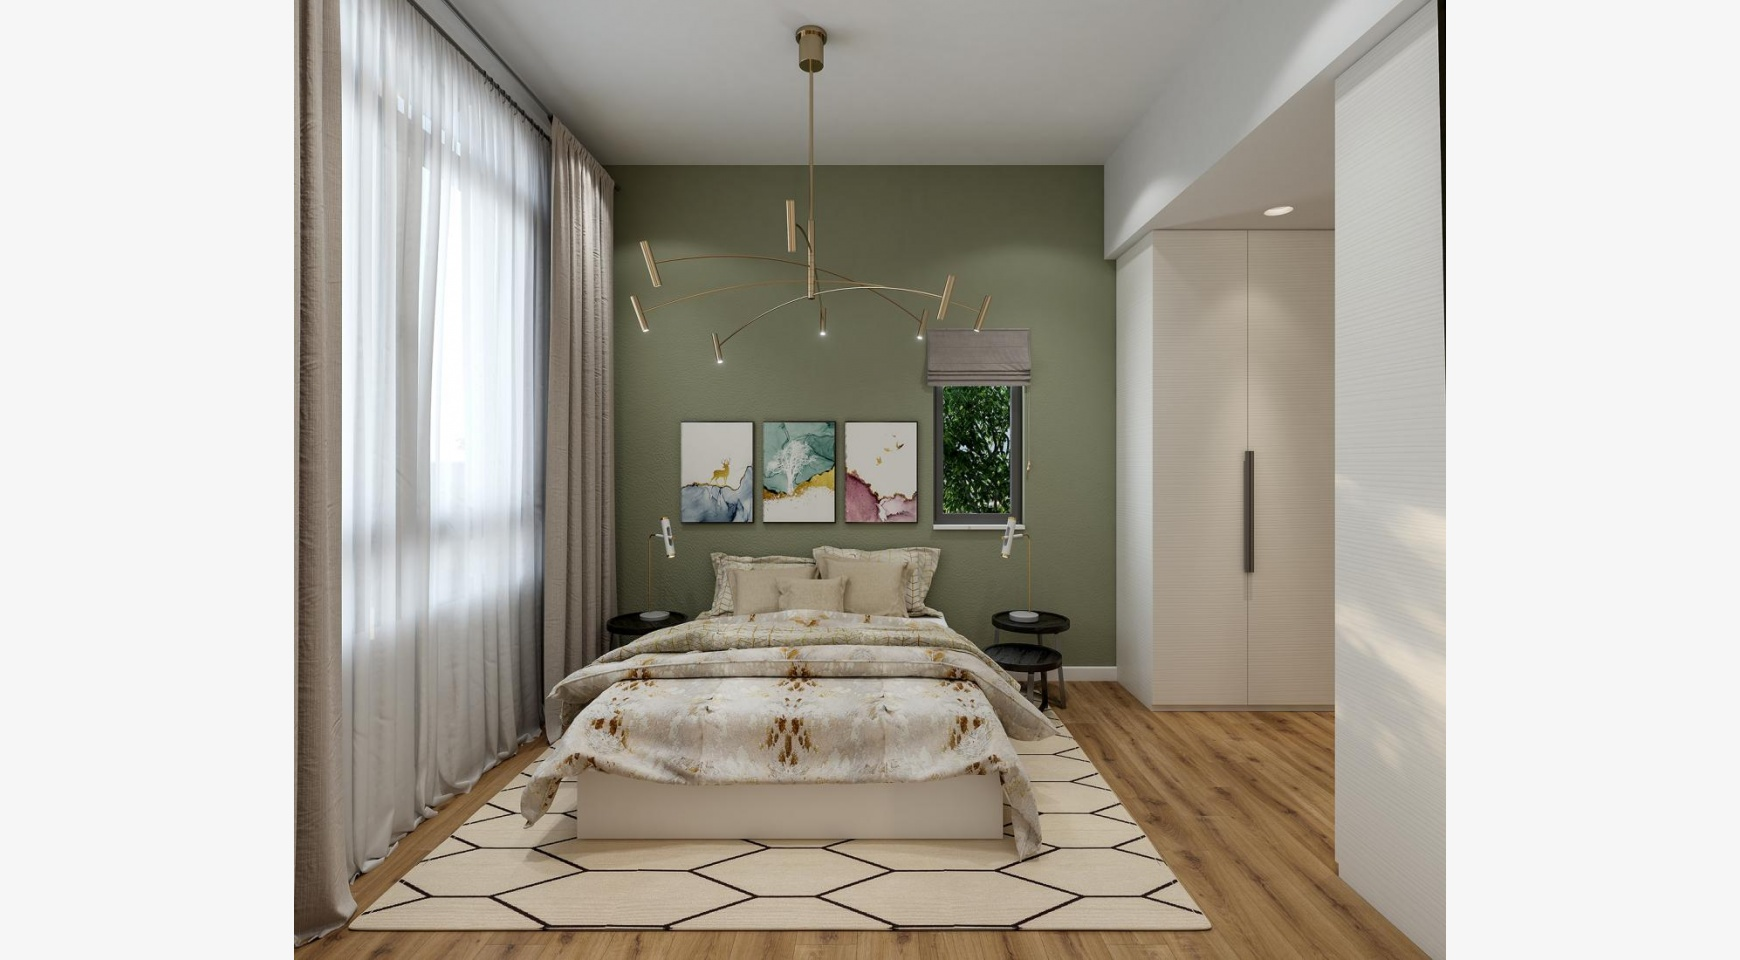 Urban City Residences, Block B. New Spacious 2 Bedroom Apartment 202 in the City Centre - 6